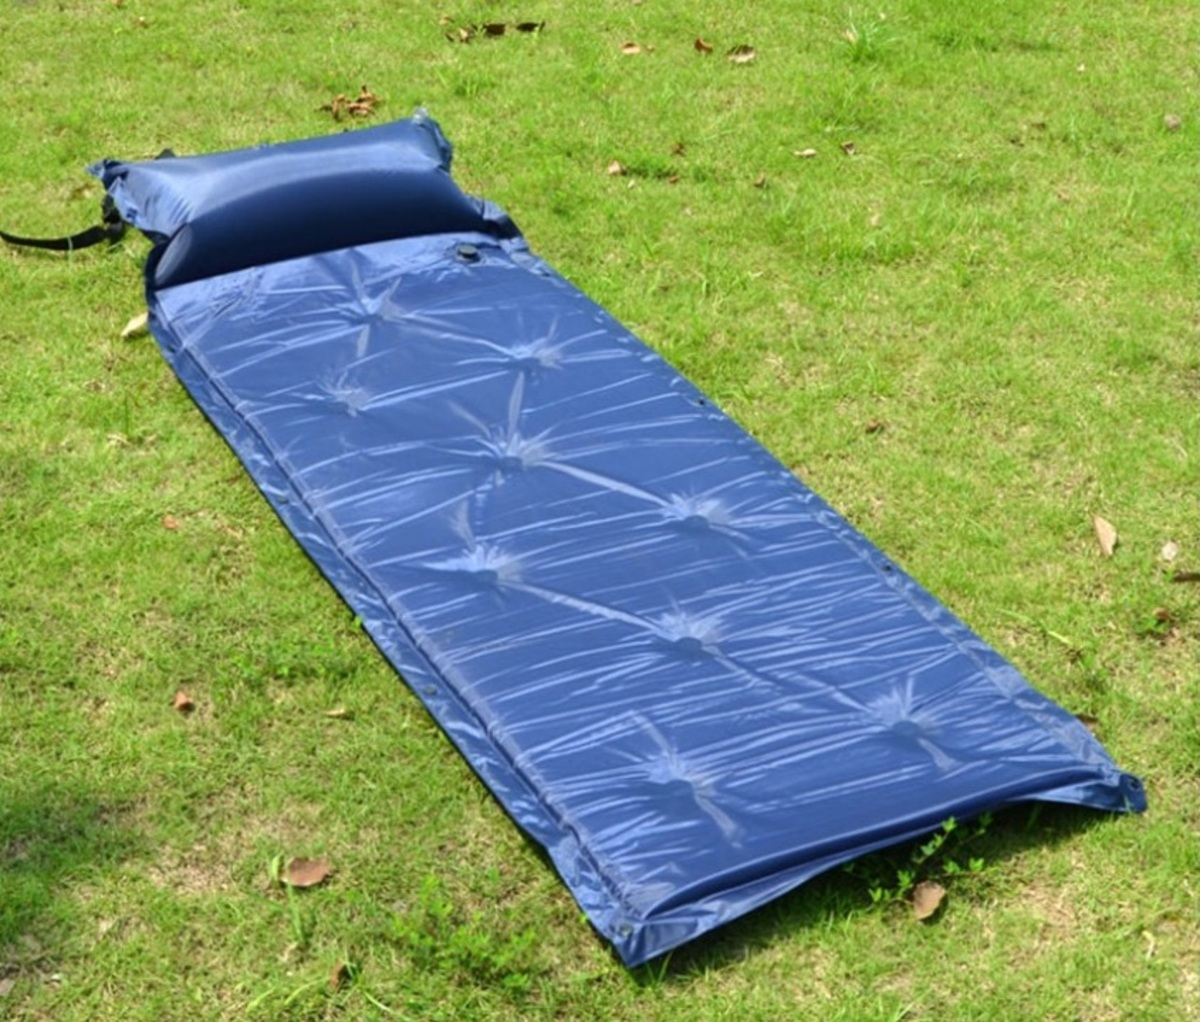 NS67 automatic inflatable outdoor camping air cushion (random colors)